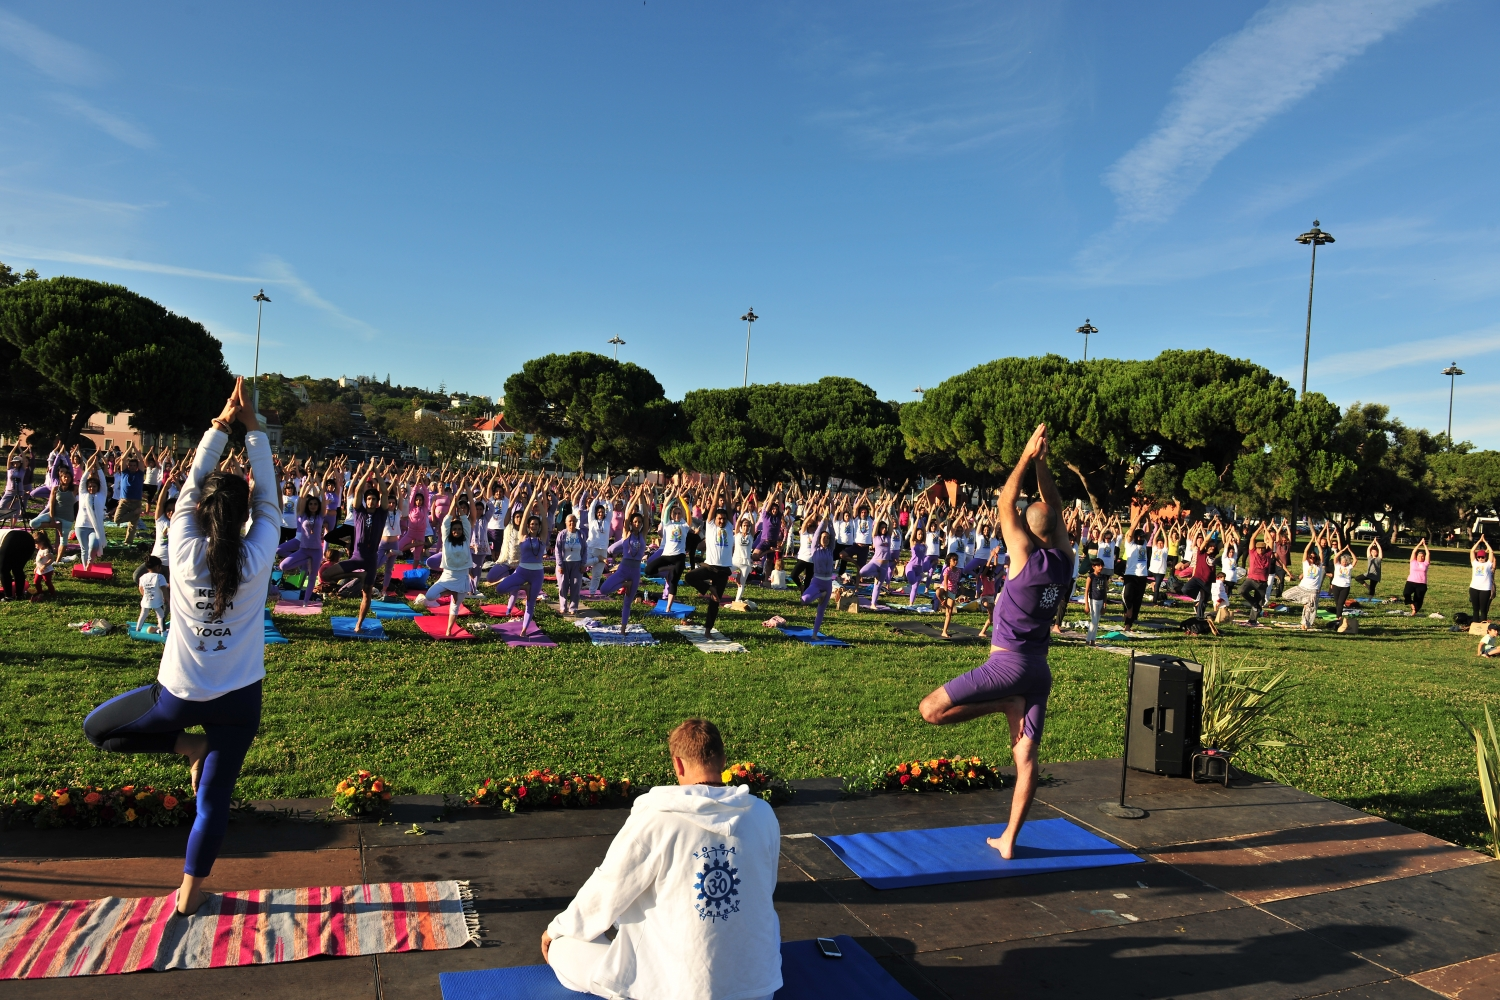 IDY - 2019, June, 21st - Belém - Common Protocol Yoga Class